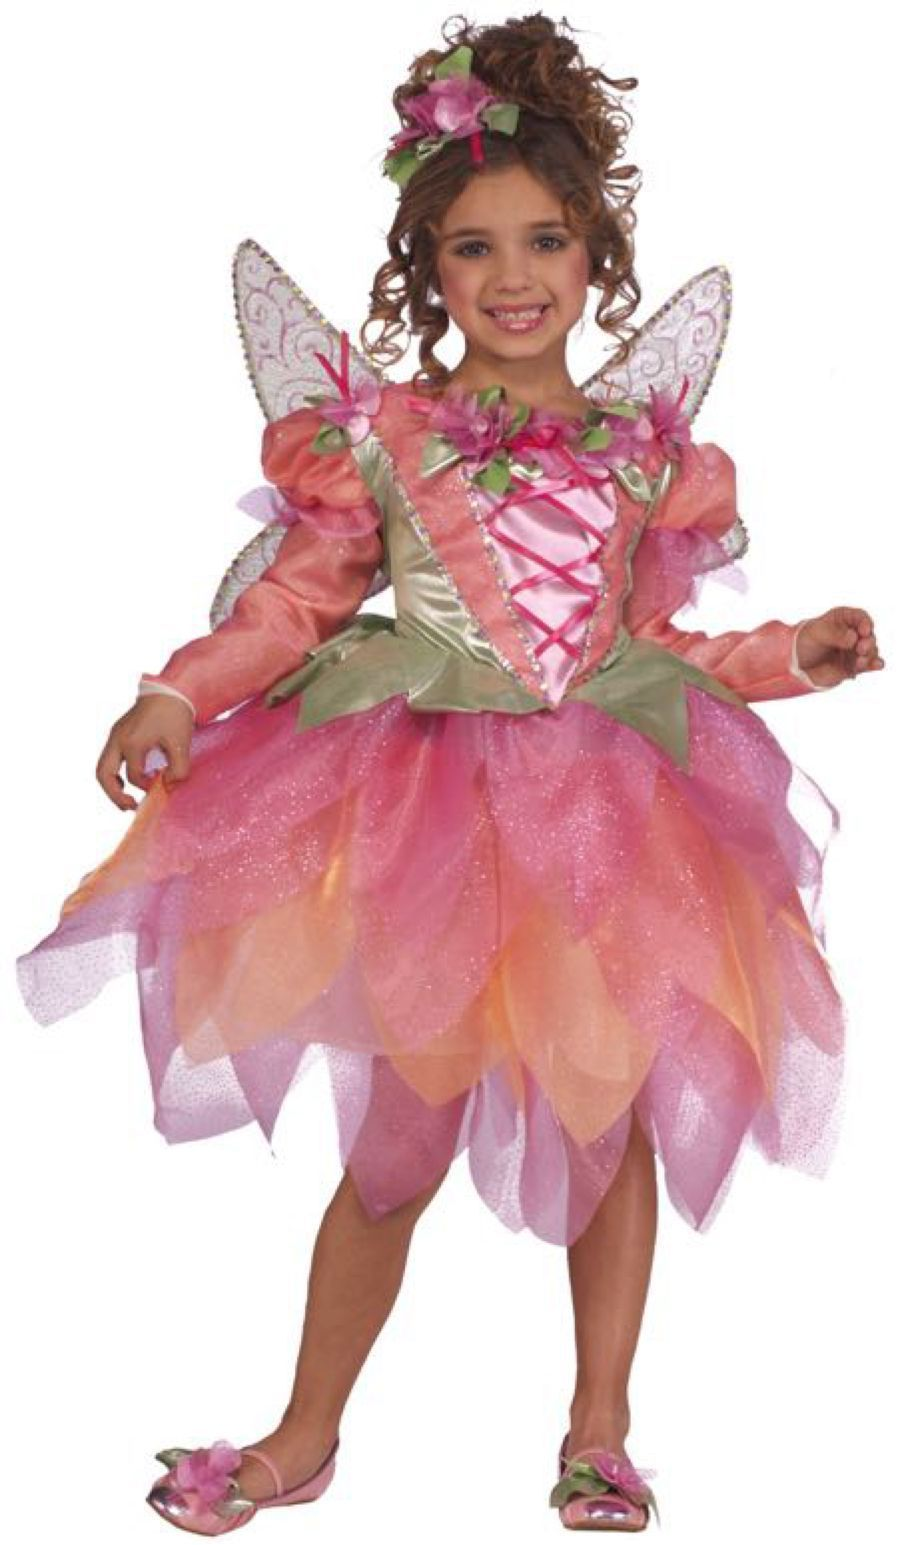 Image 1 of Rubies Deluxe Pink Pixie Girl's Costume w/Tutu Dres, Headpiece, Wings 881759 - P